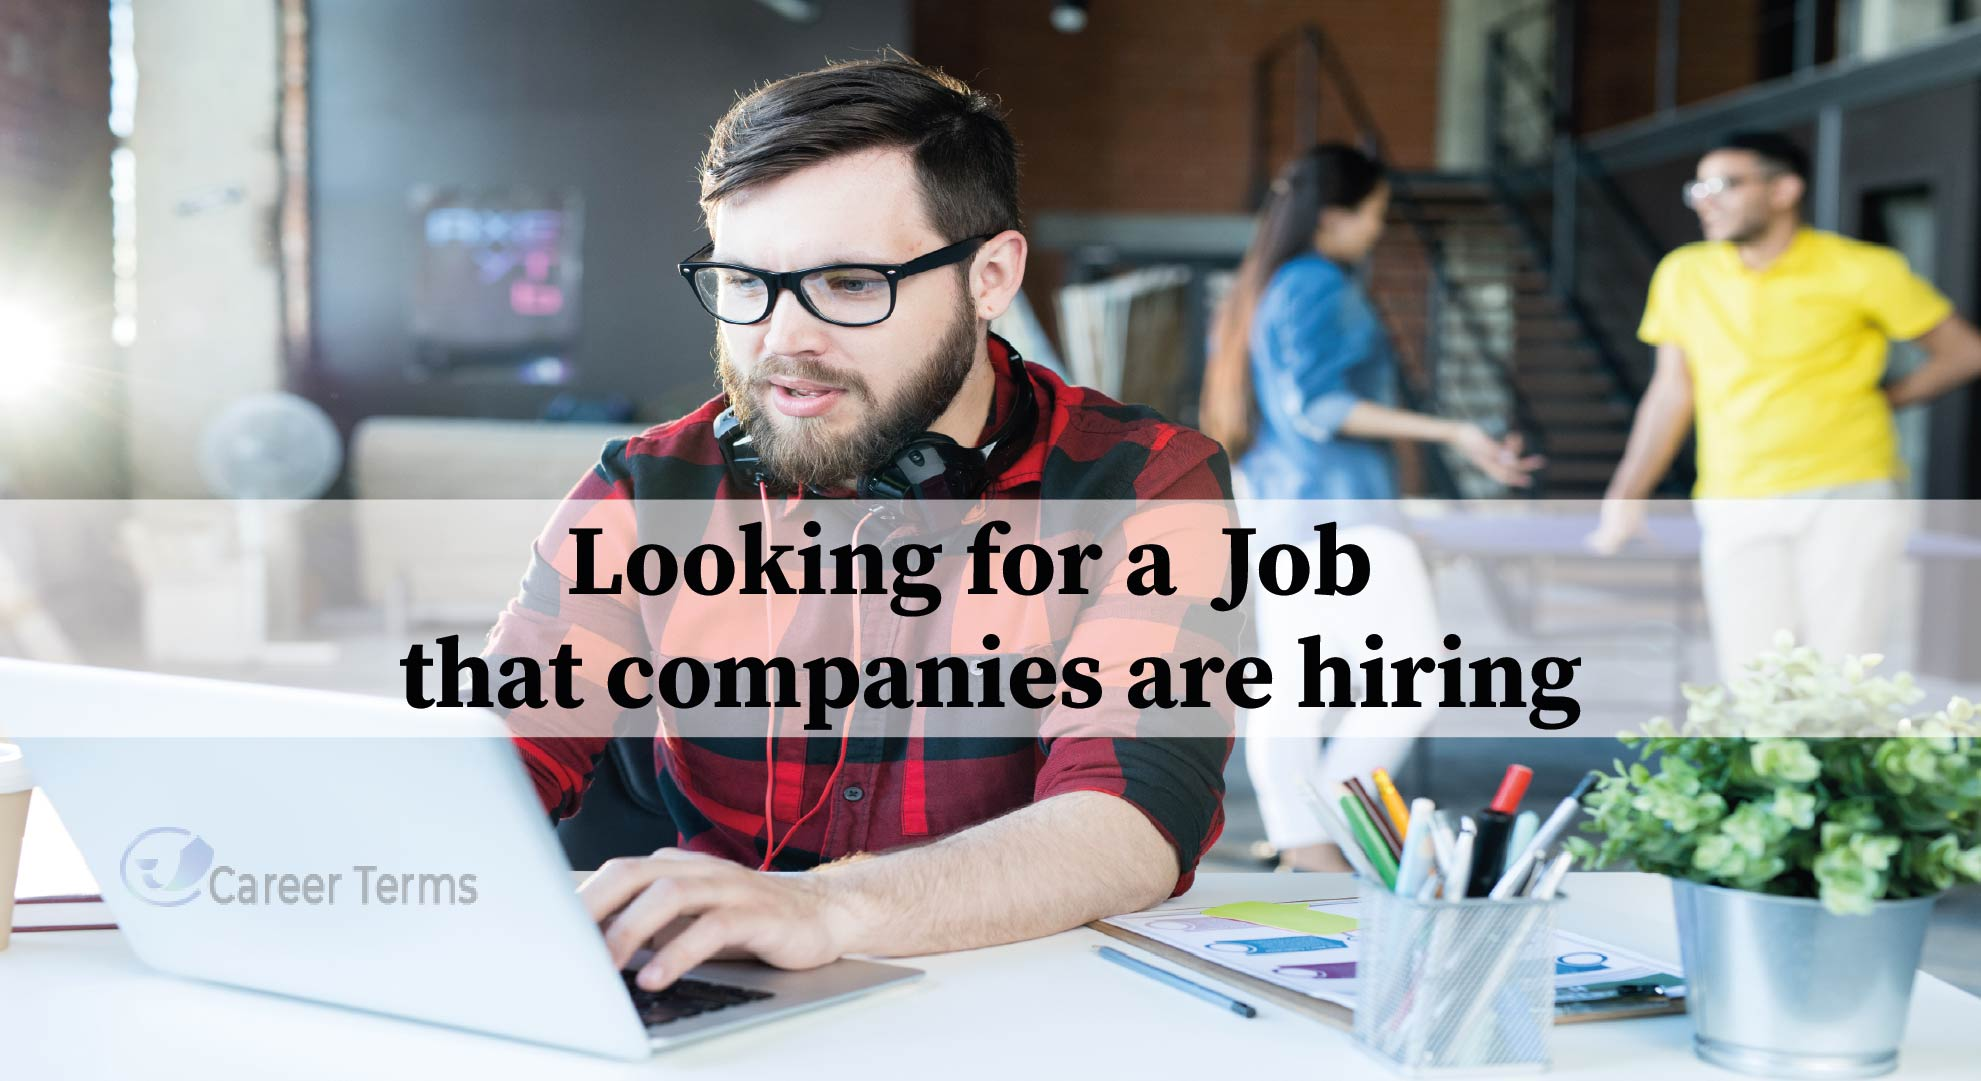 Looking for a Job that companies are hiring